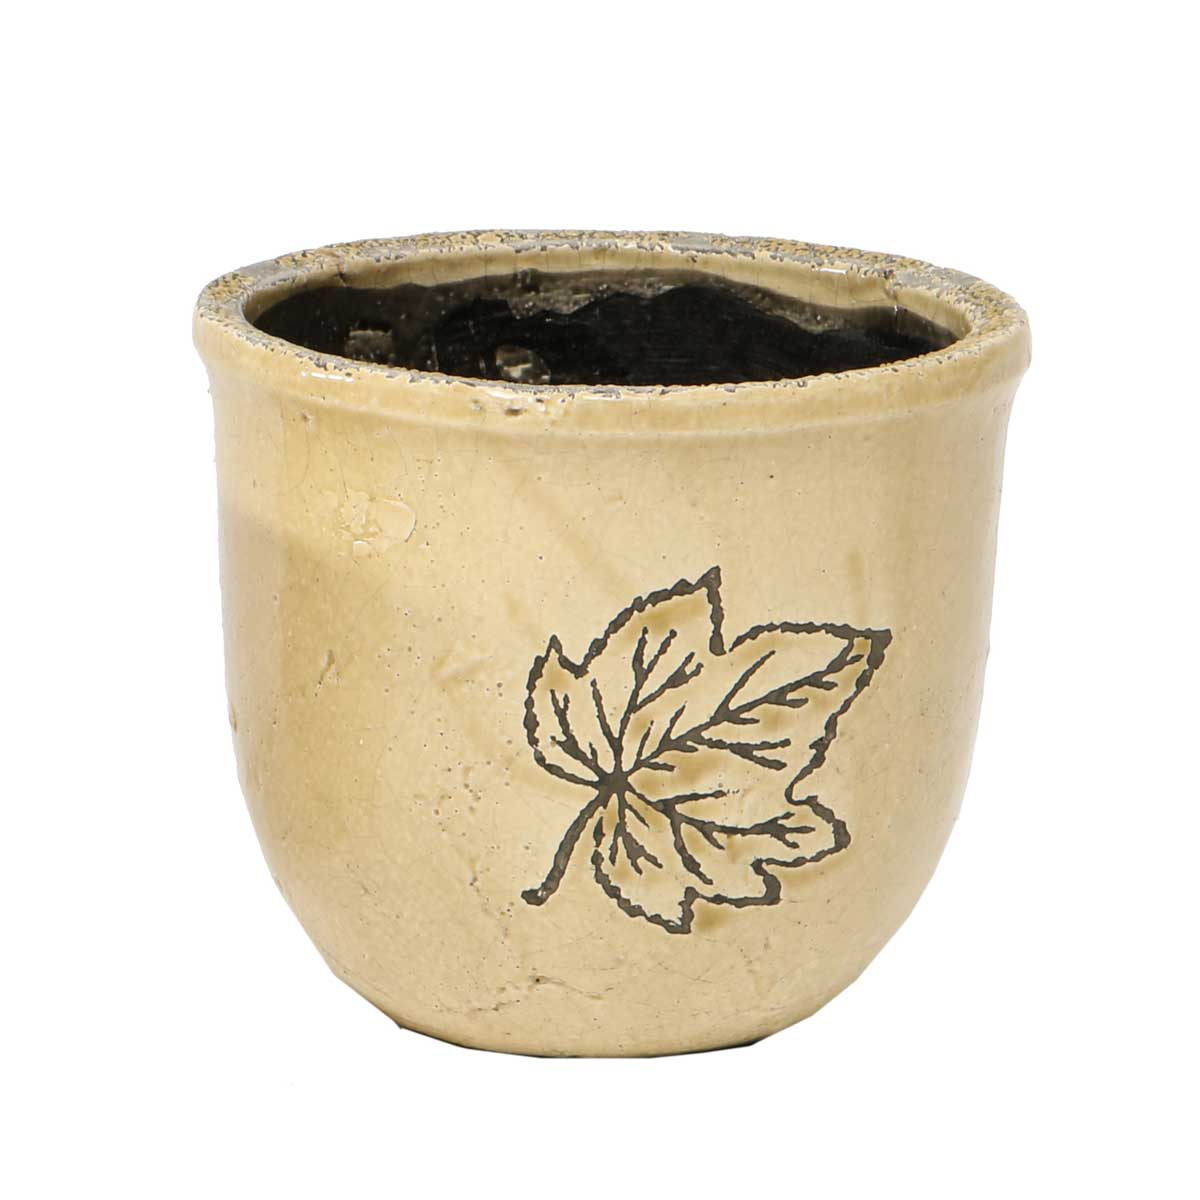 Ceramic Leaf Cache Pot 5.5�x6� A2069 TN